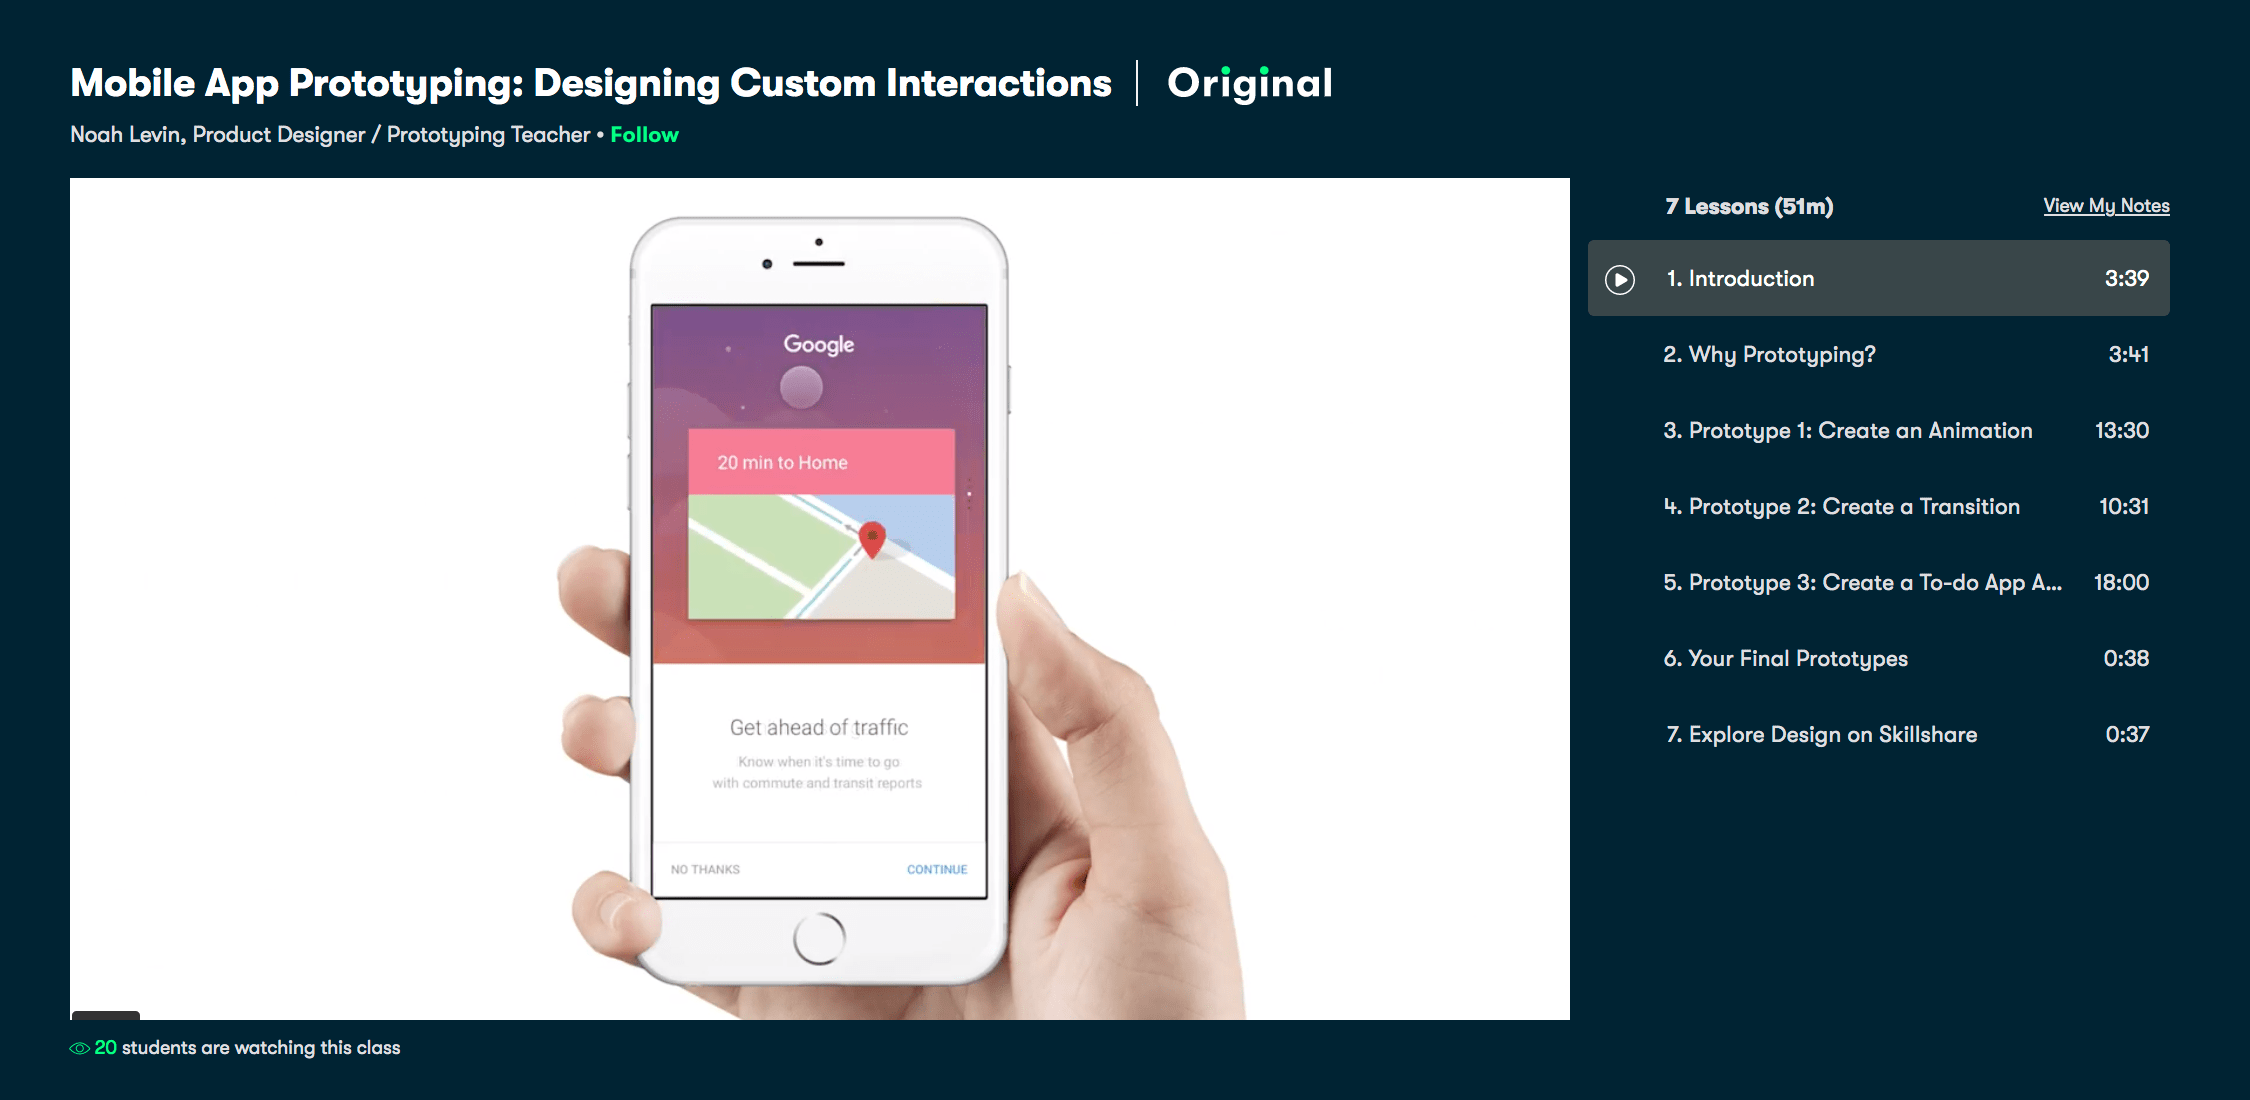 Mobile App Prototyping- Designing Custom Interactions – Skillshare Course Review